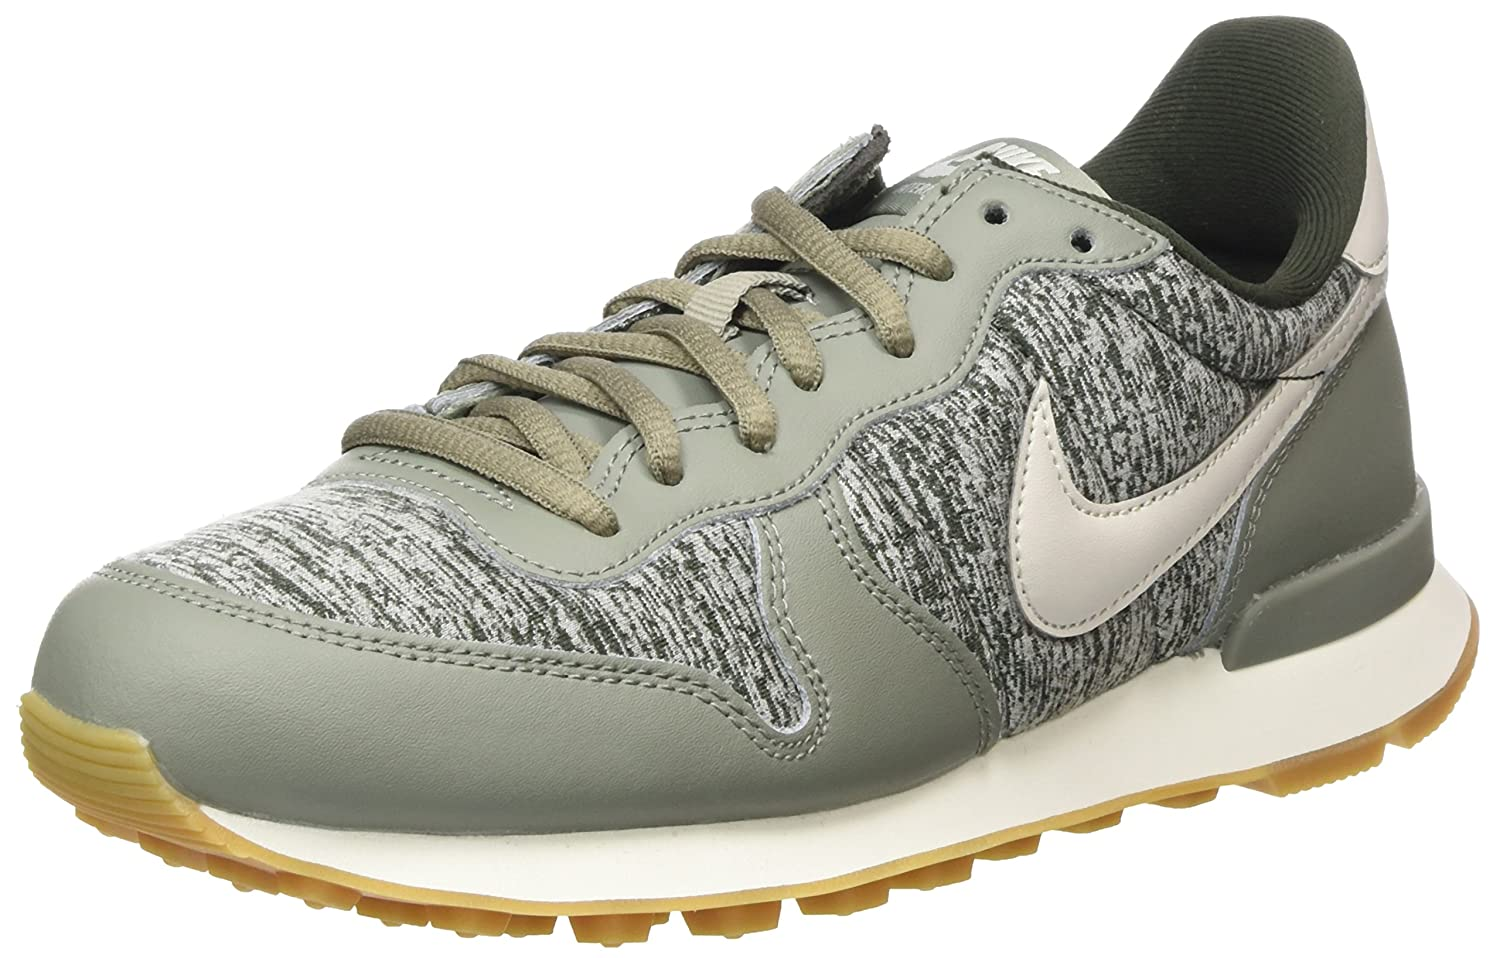 Nike Wmns Internationalist, Zapatillas para Mujer 38 EU|Verde (Dark Stucco/Light Bone-sequoia-sail-gum Light Brown 022)